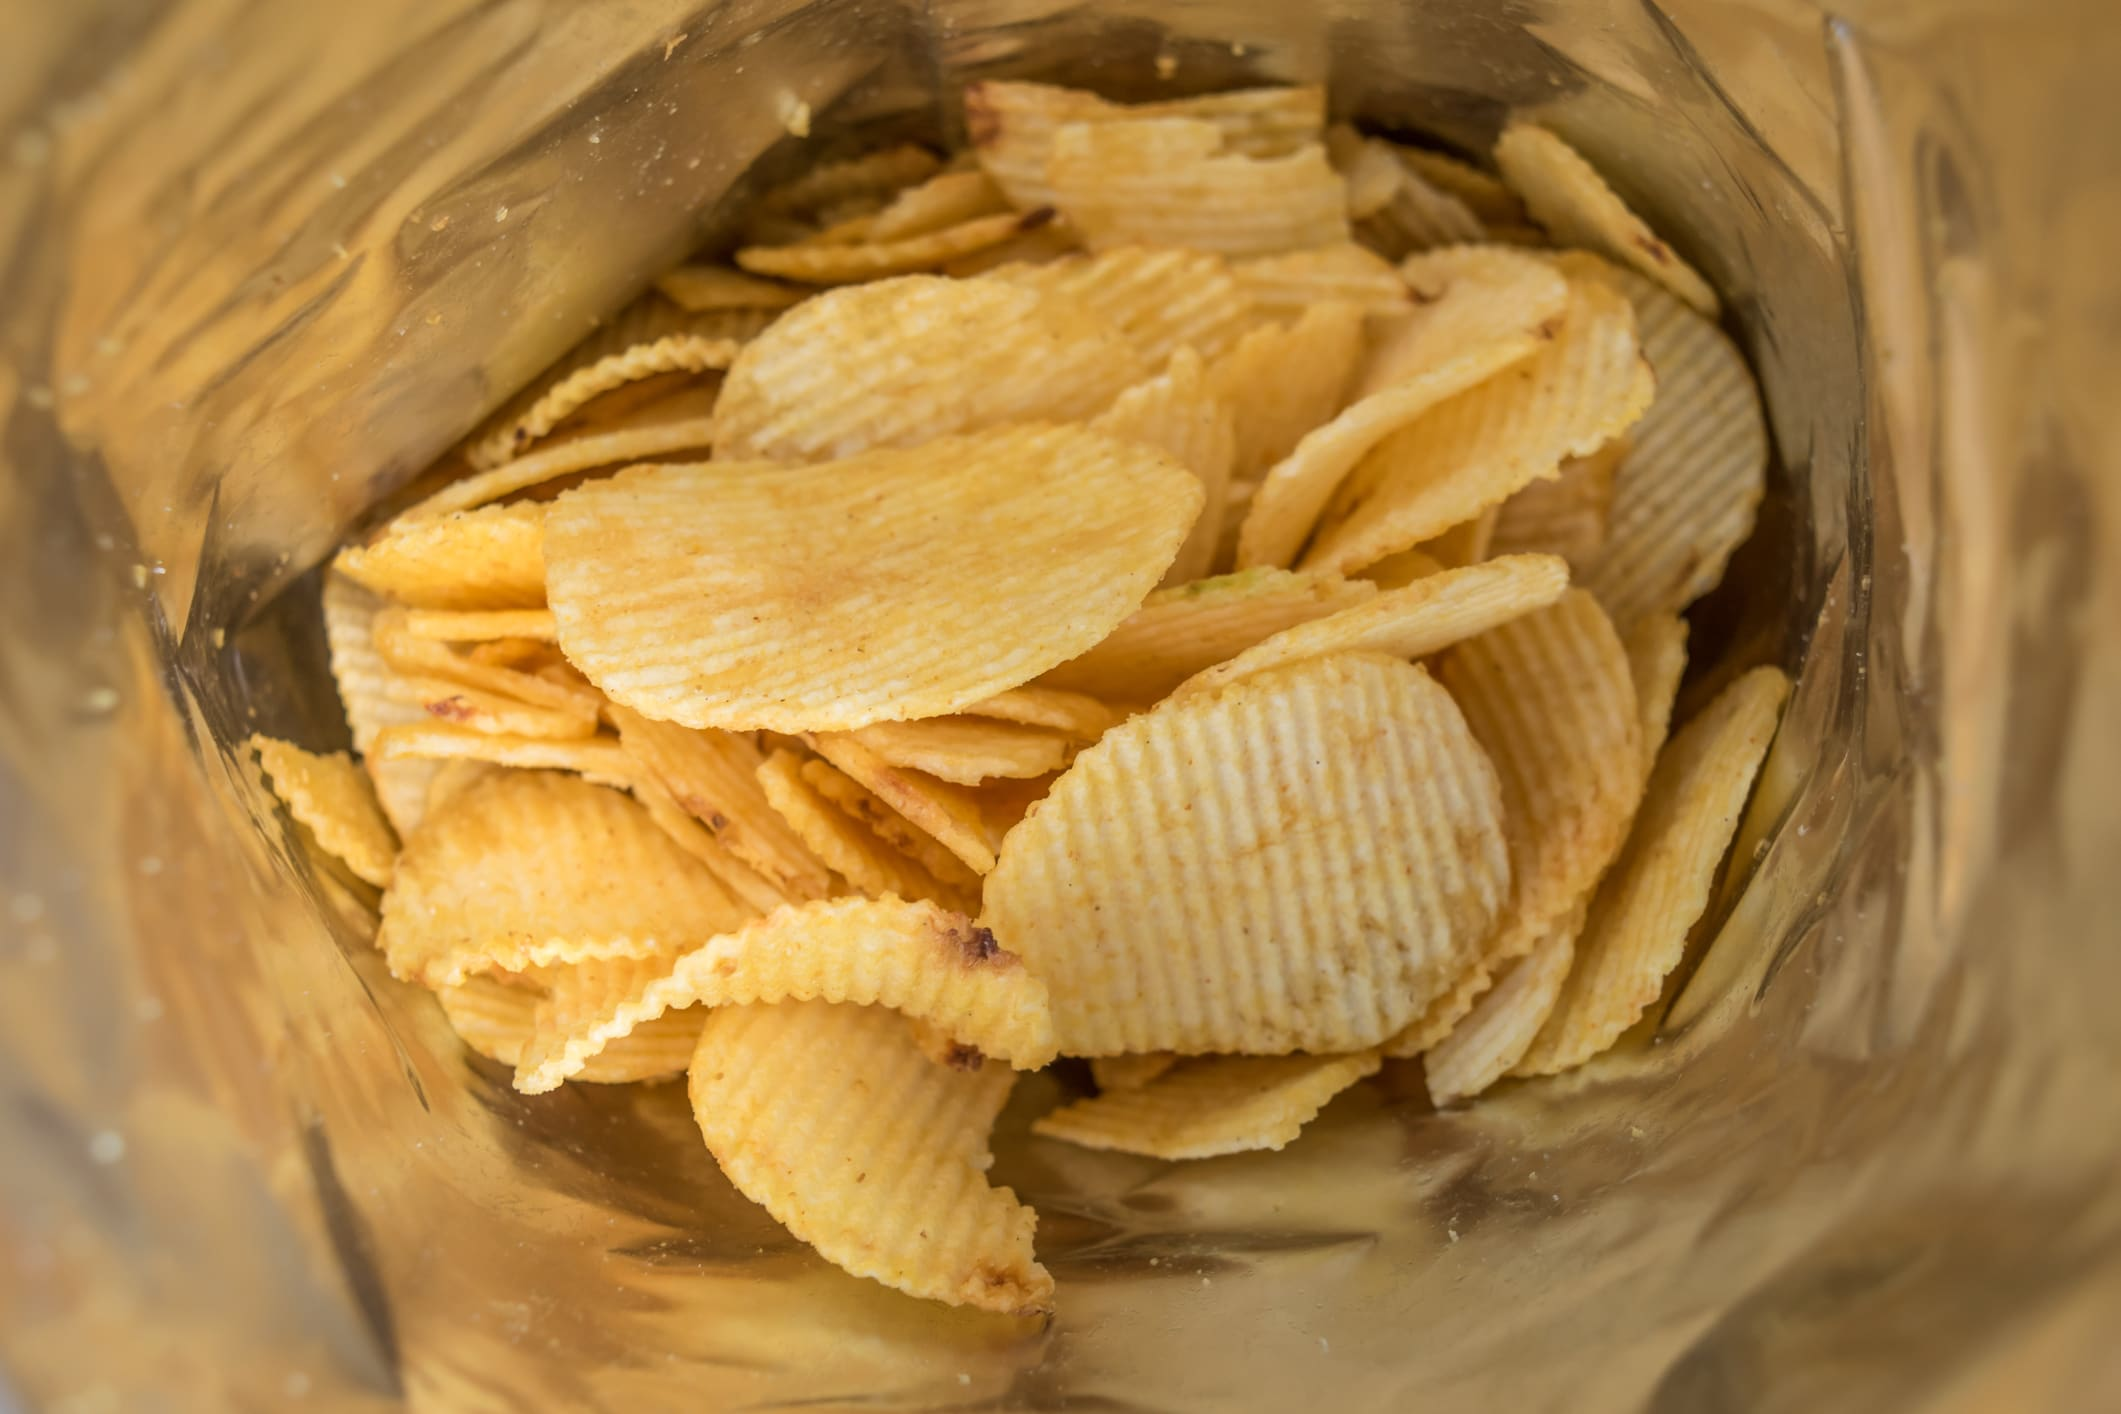 Chips in a Bag